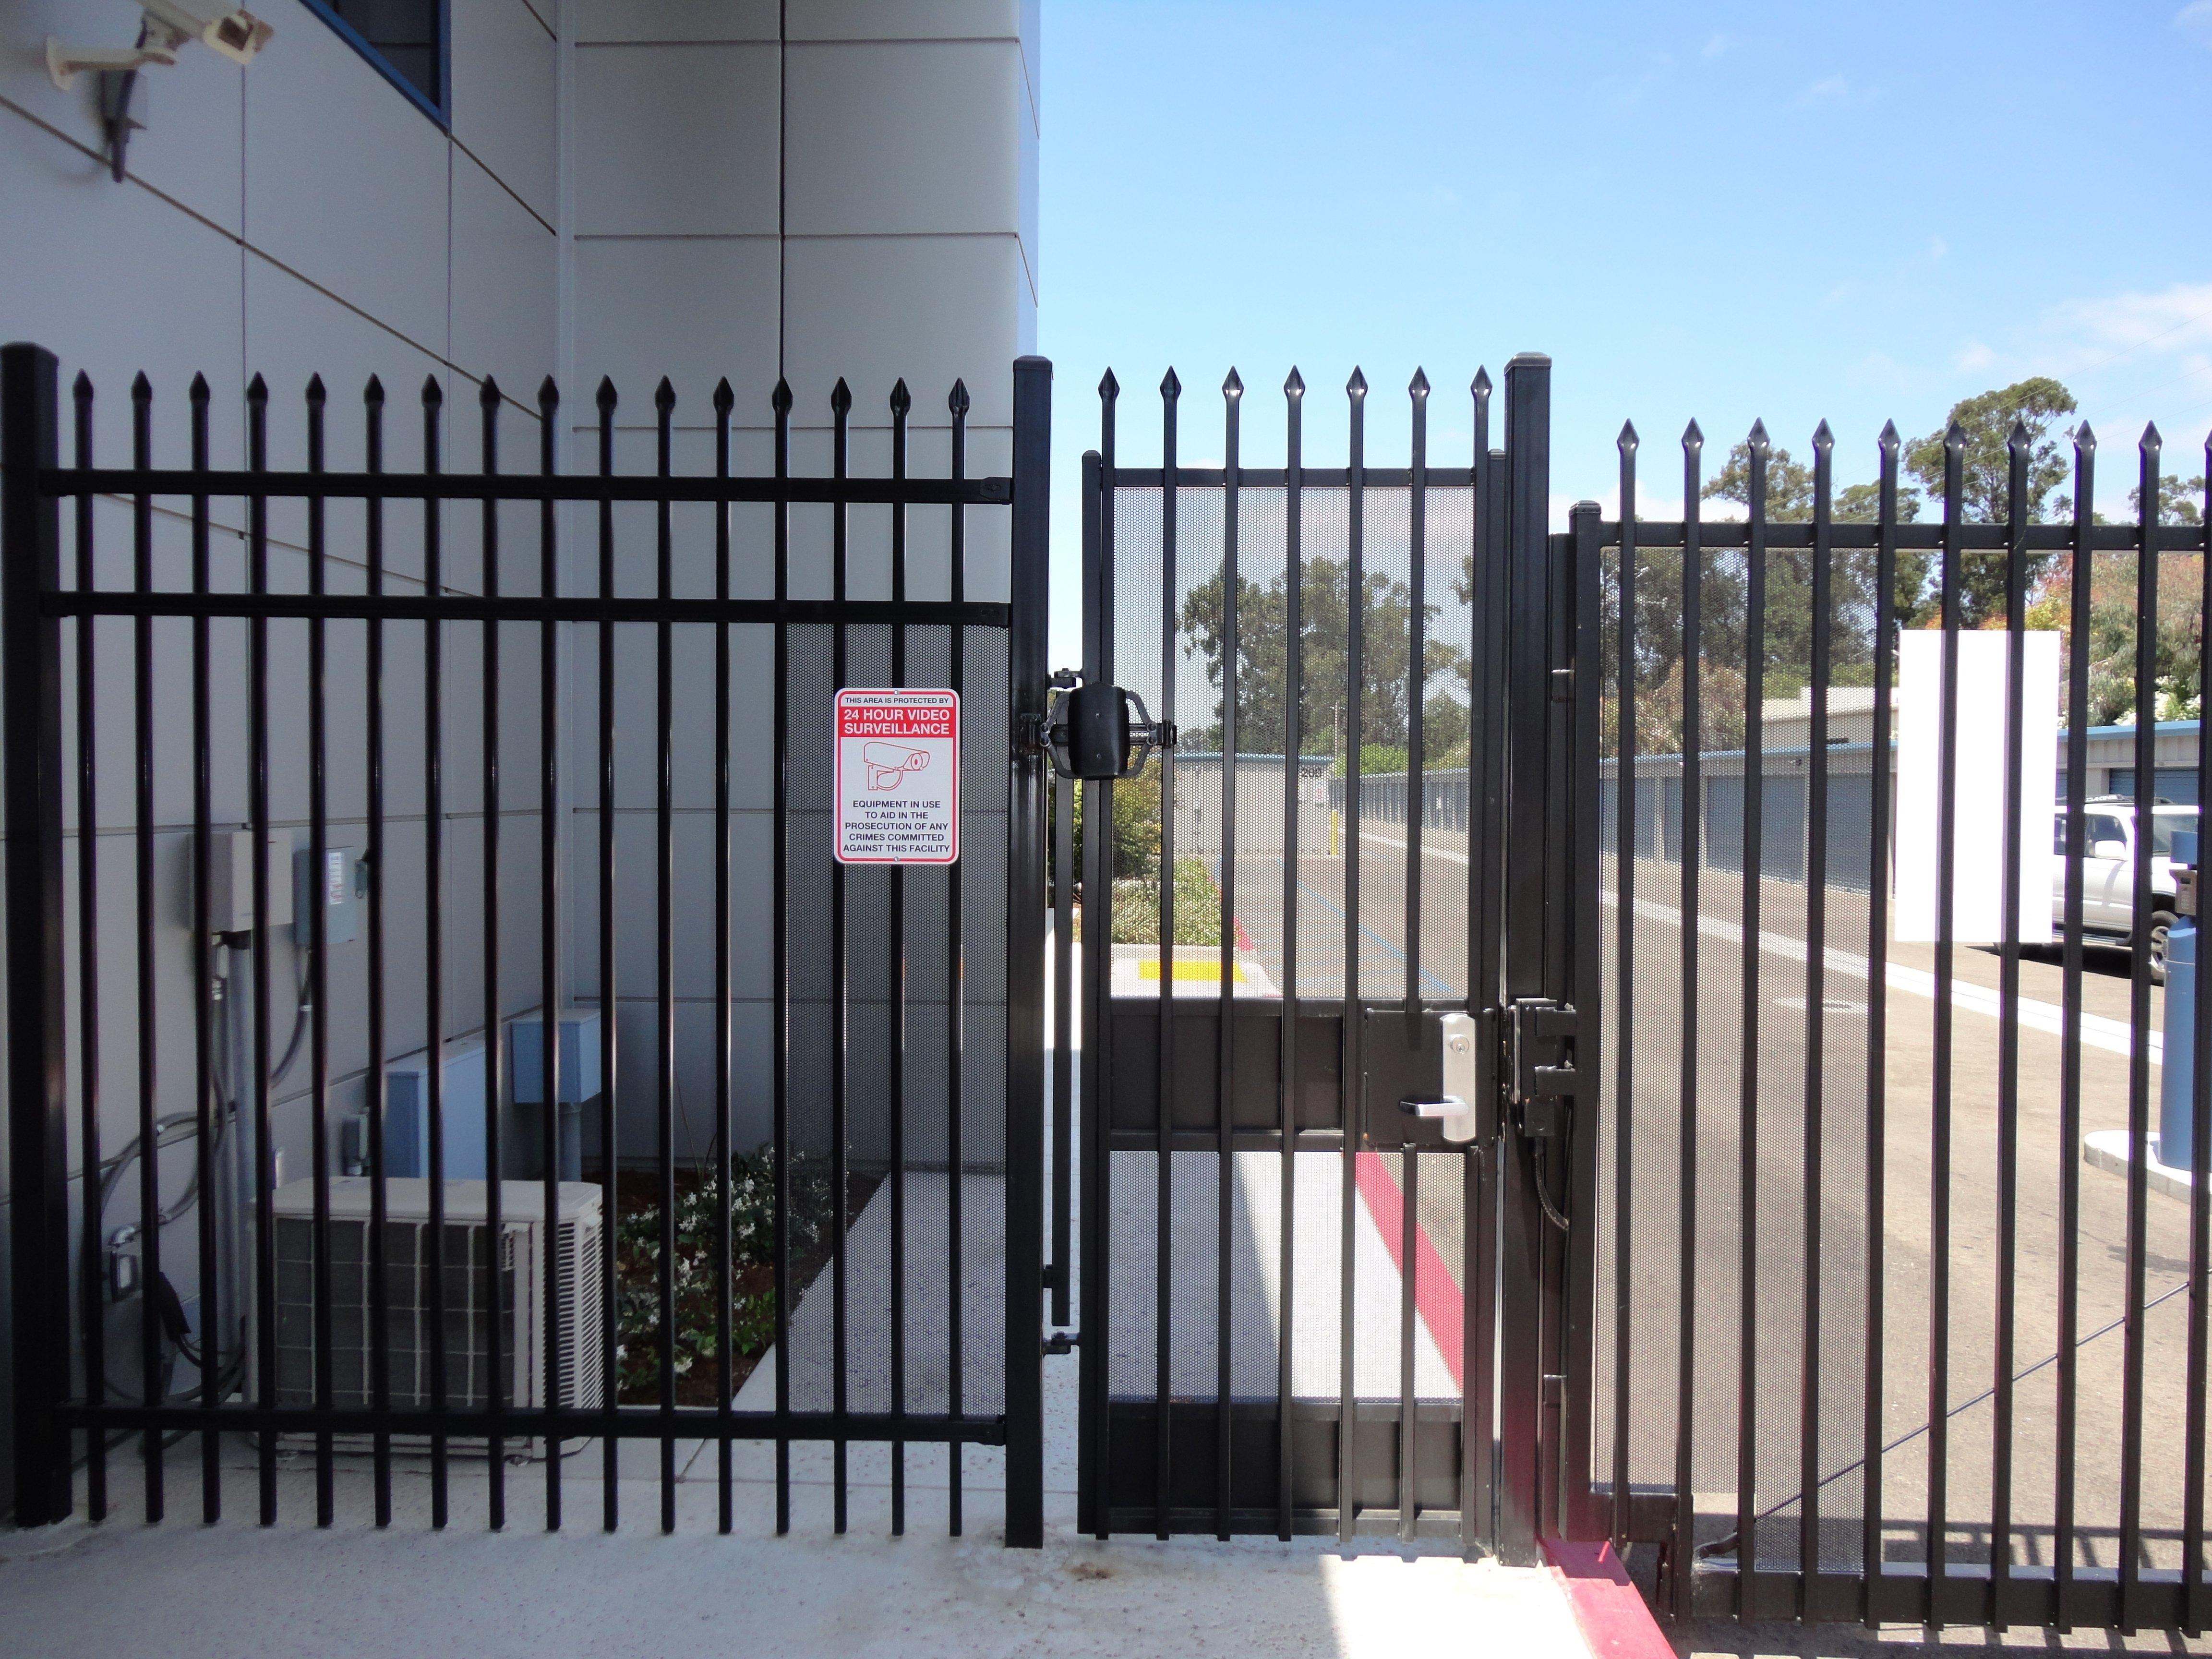 Ml Entry Gates Your First Choice Call Morty 805 295 9128